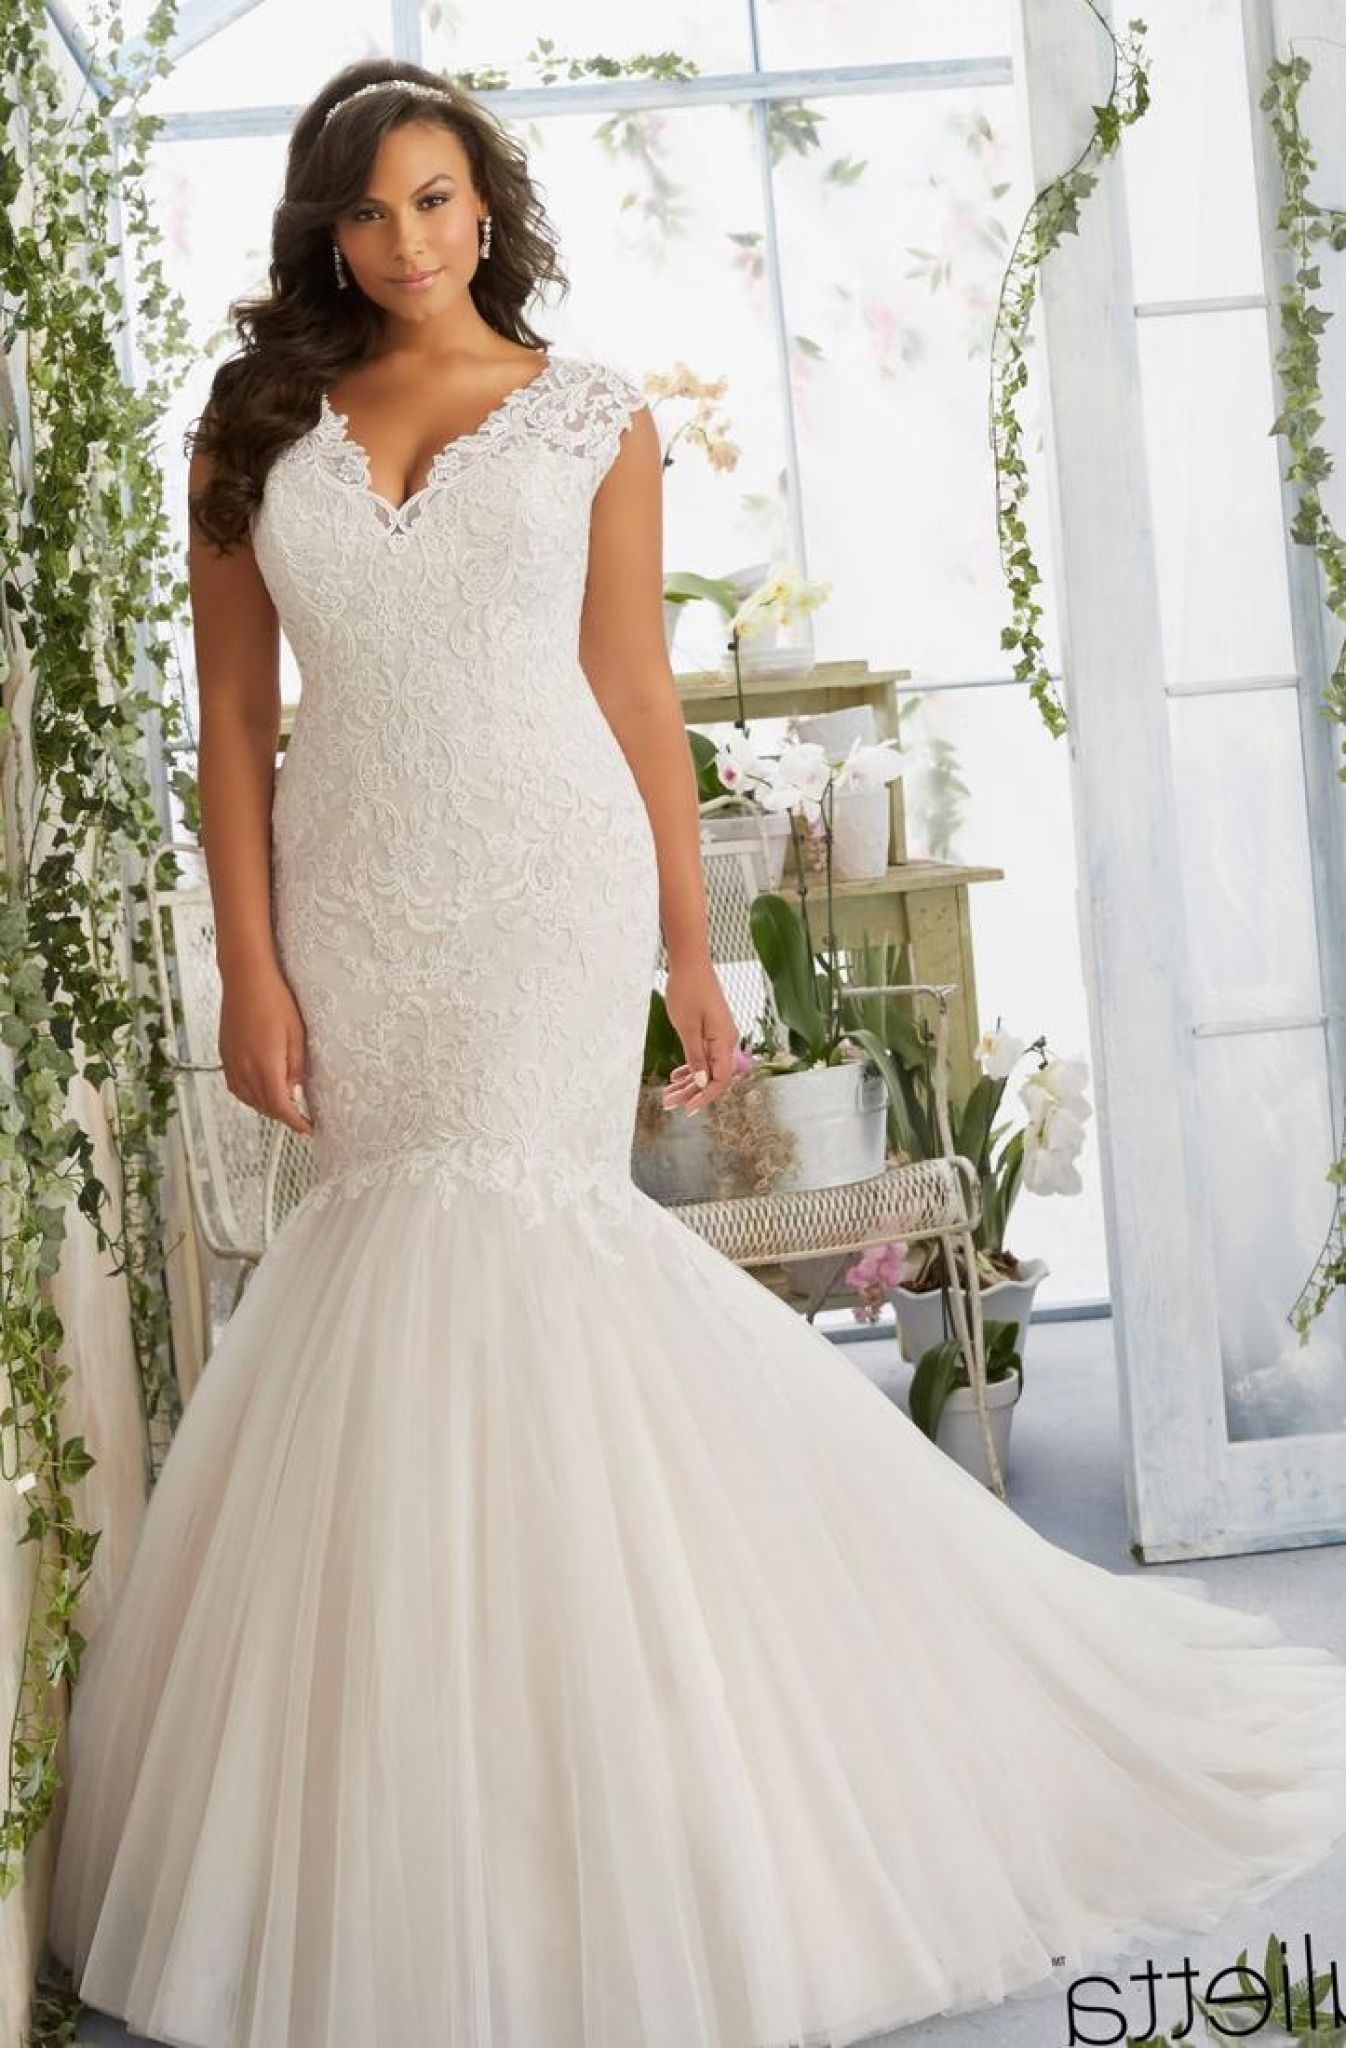 attractive wedding gowns dallas tx pictures princess wedding dresses ideas. Black Bedroom Furniture Sets. Home Design Ideas